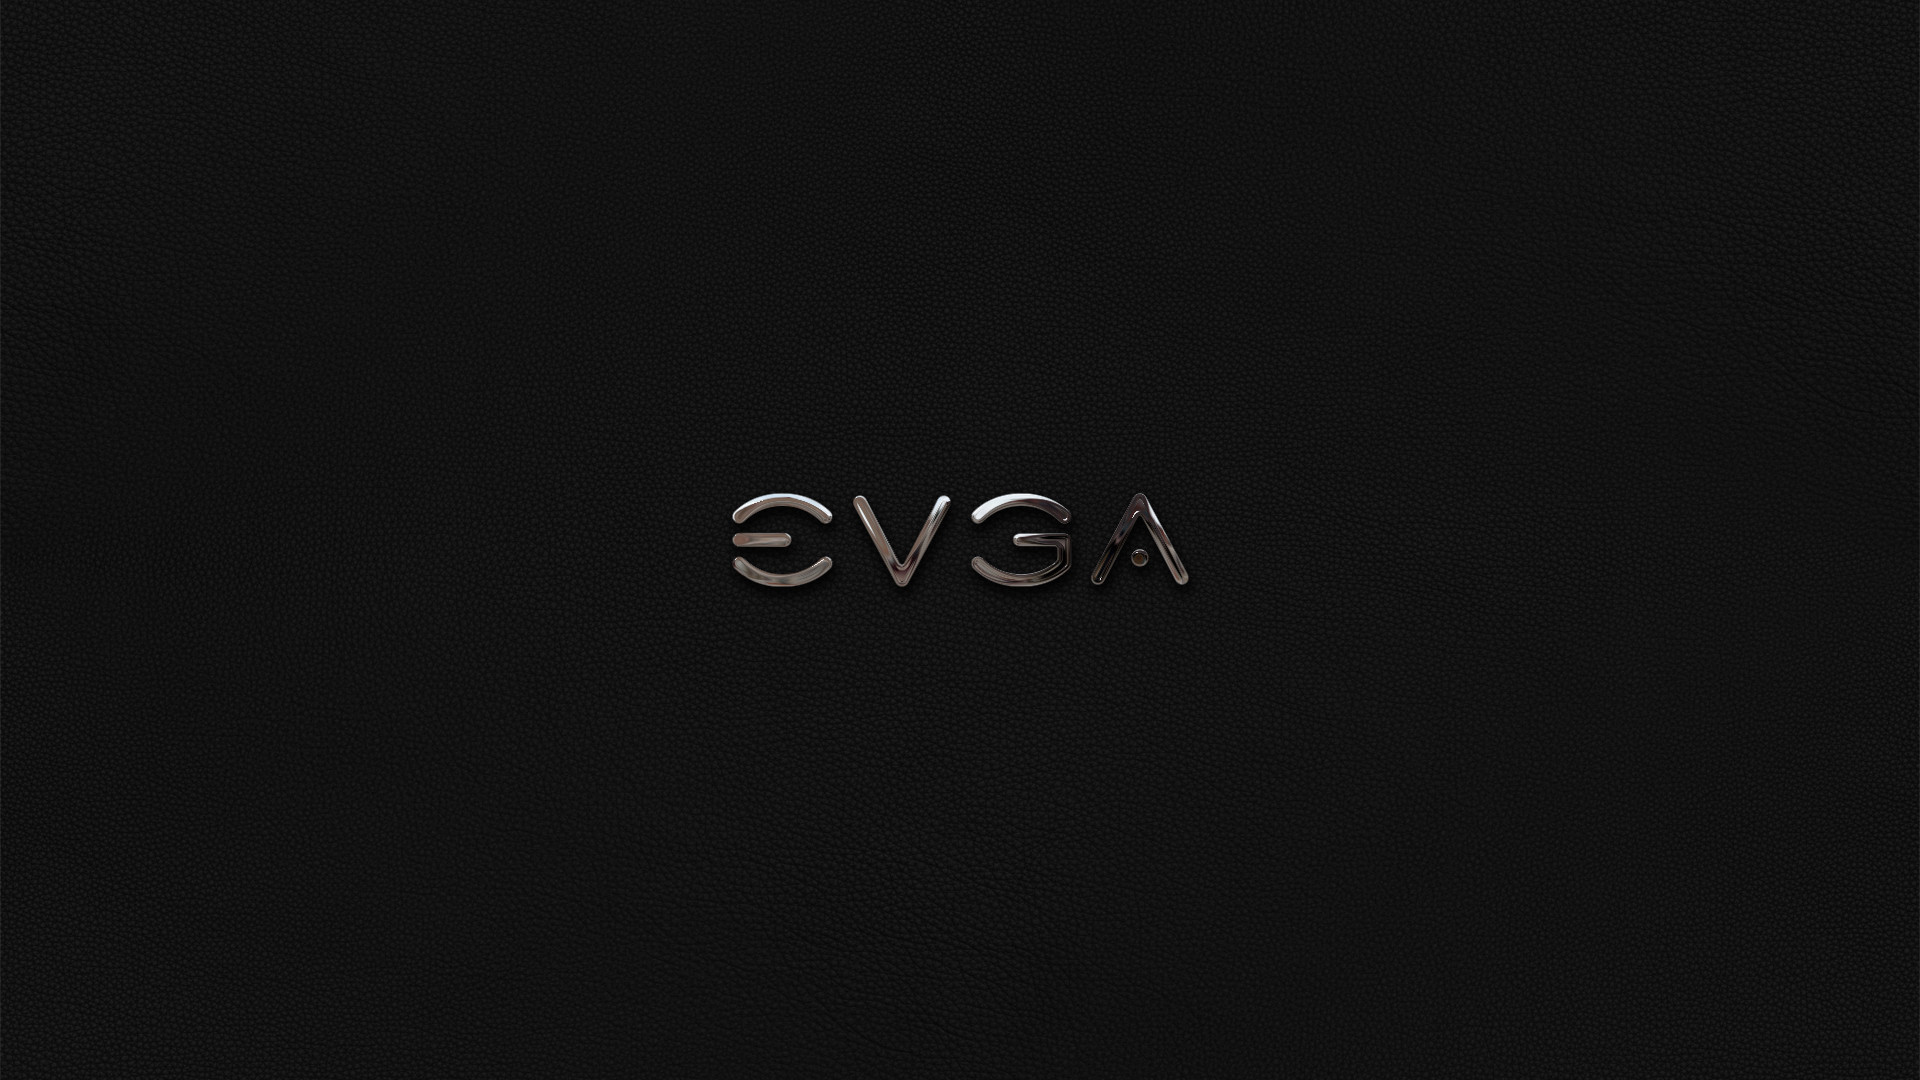 1920x1080 ...  EVGA Wallpaper by Stickcorporation on DeviantA